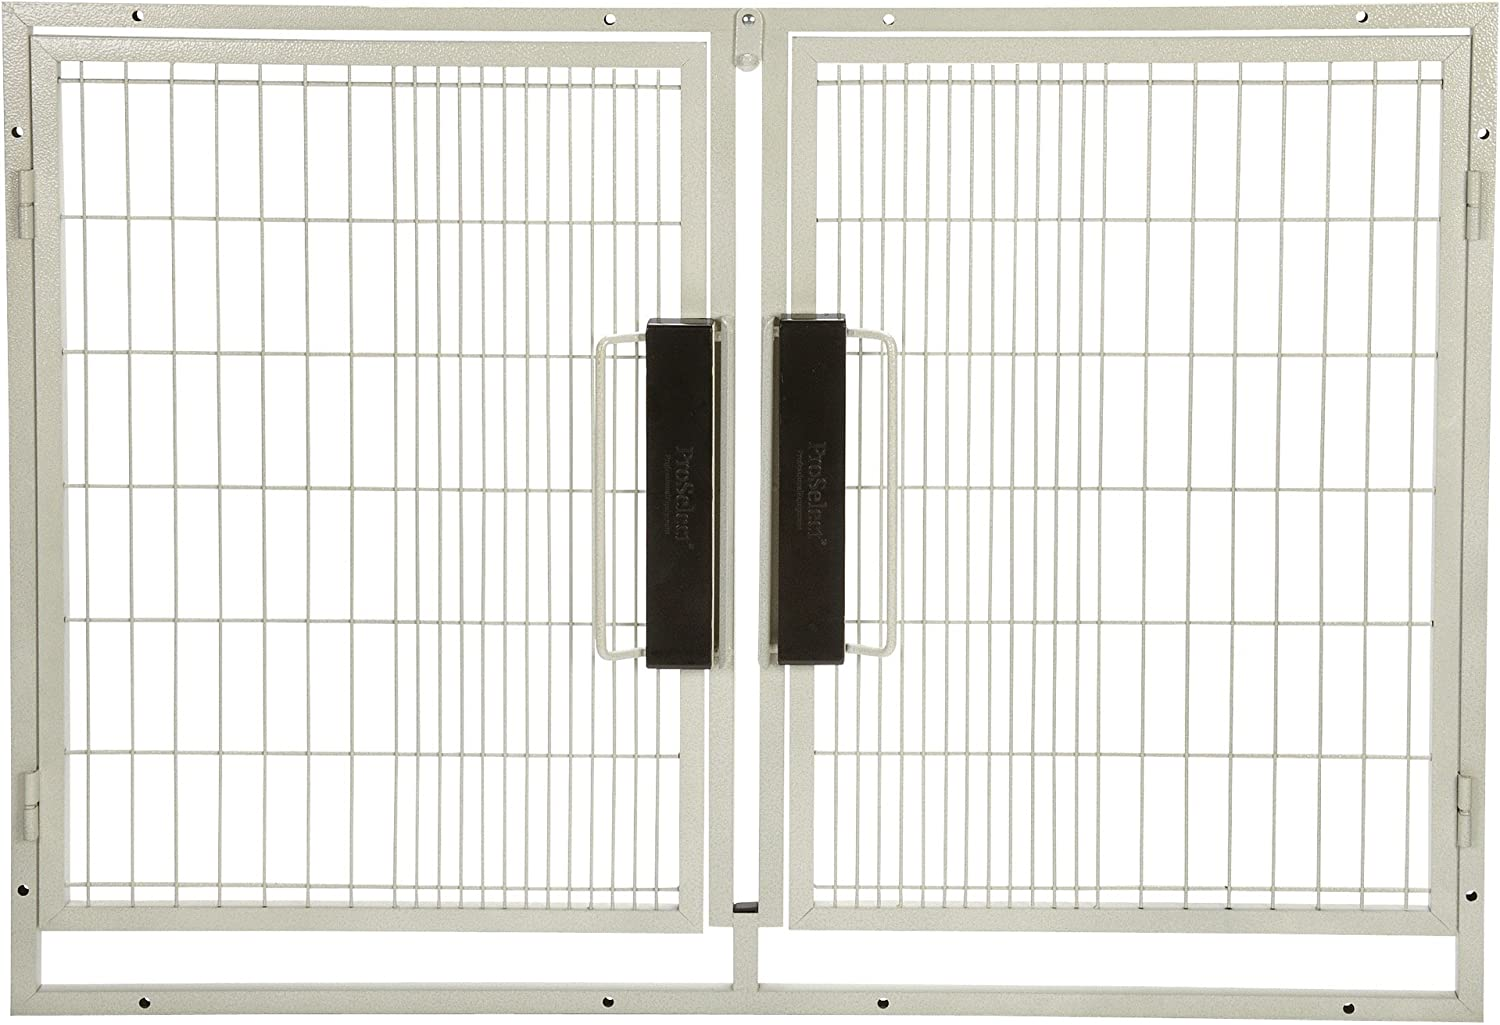 Ppinklect Modular Kennel Cage Replacement Door for Pets, Medium, Sandstone